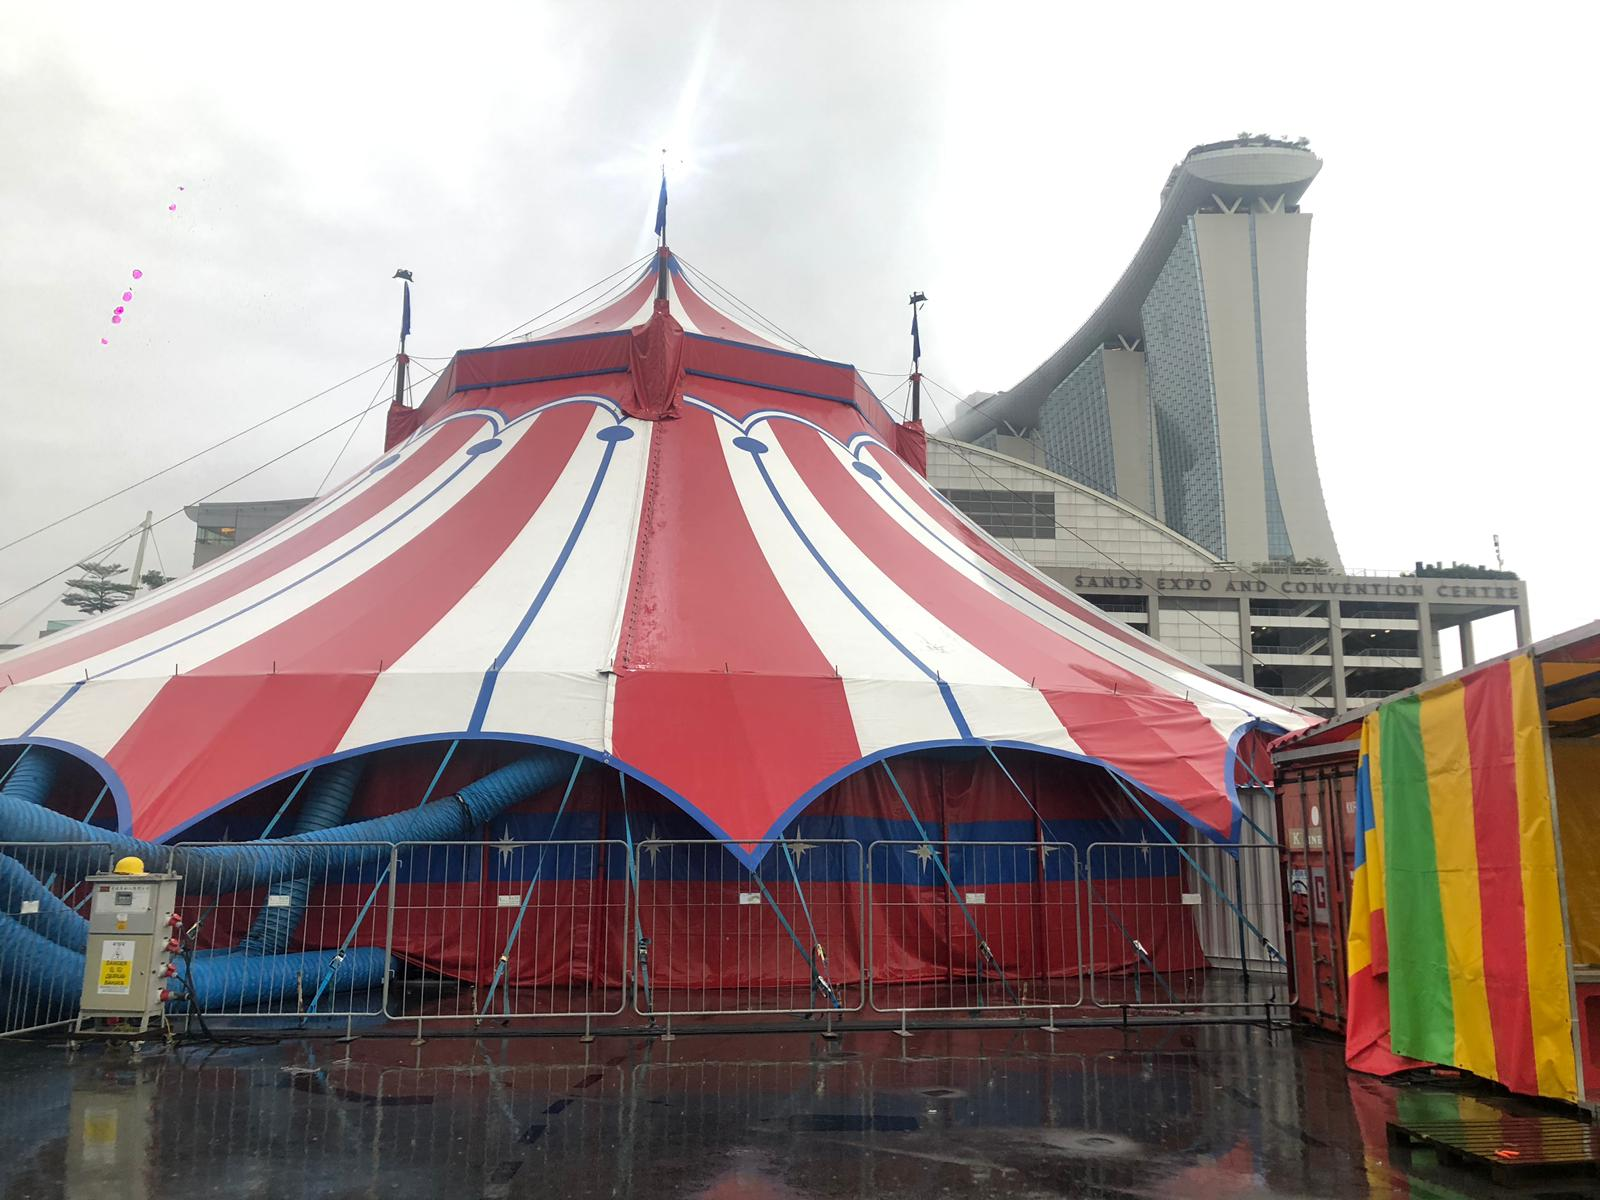 The Big Top of the Great Circus of Europe, Venue: Bayfront Event Space, 12A Bayfront Avenue, Singapore 018970, From: 3pm to 11pm, Dec 20 to Jan 1. Photo Credit: Connected to India